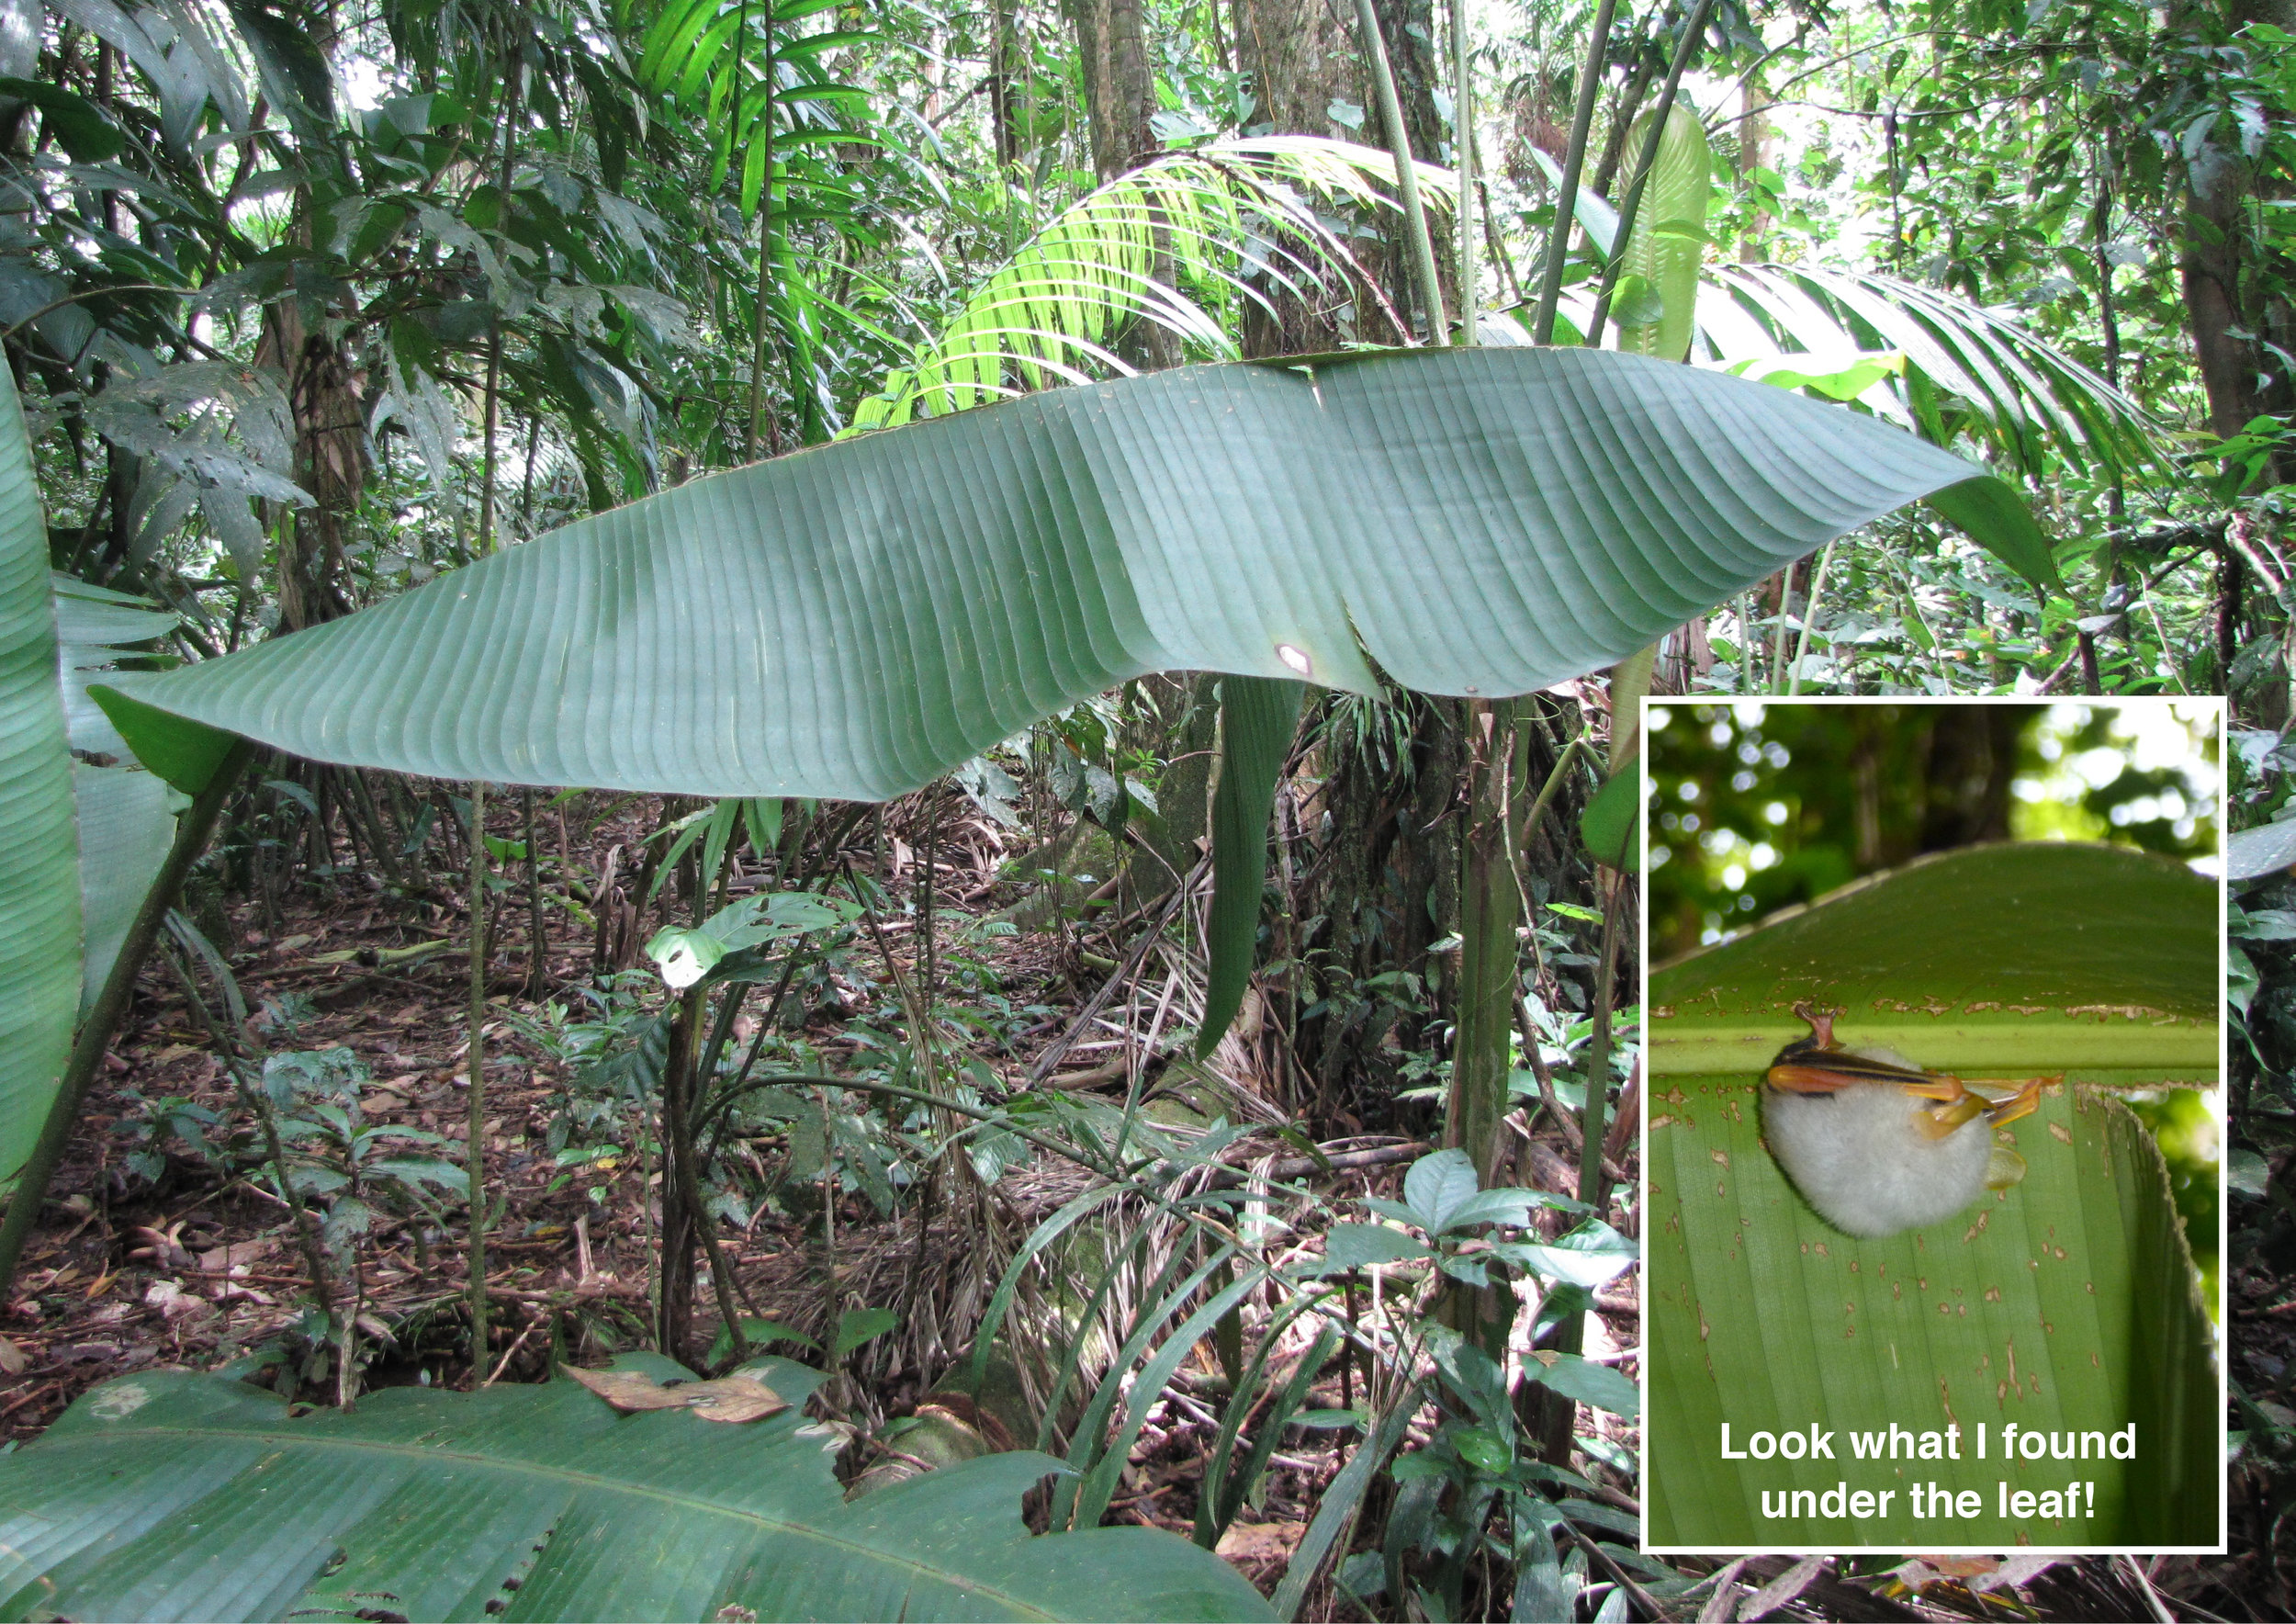 Leaf tent and a roosting Honduran White Bat - Le Salva Biological Research Station, Costa Rica